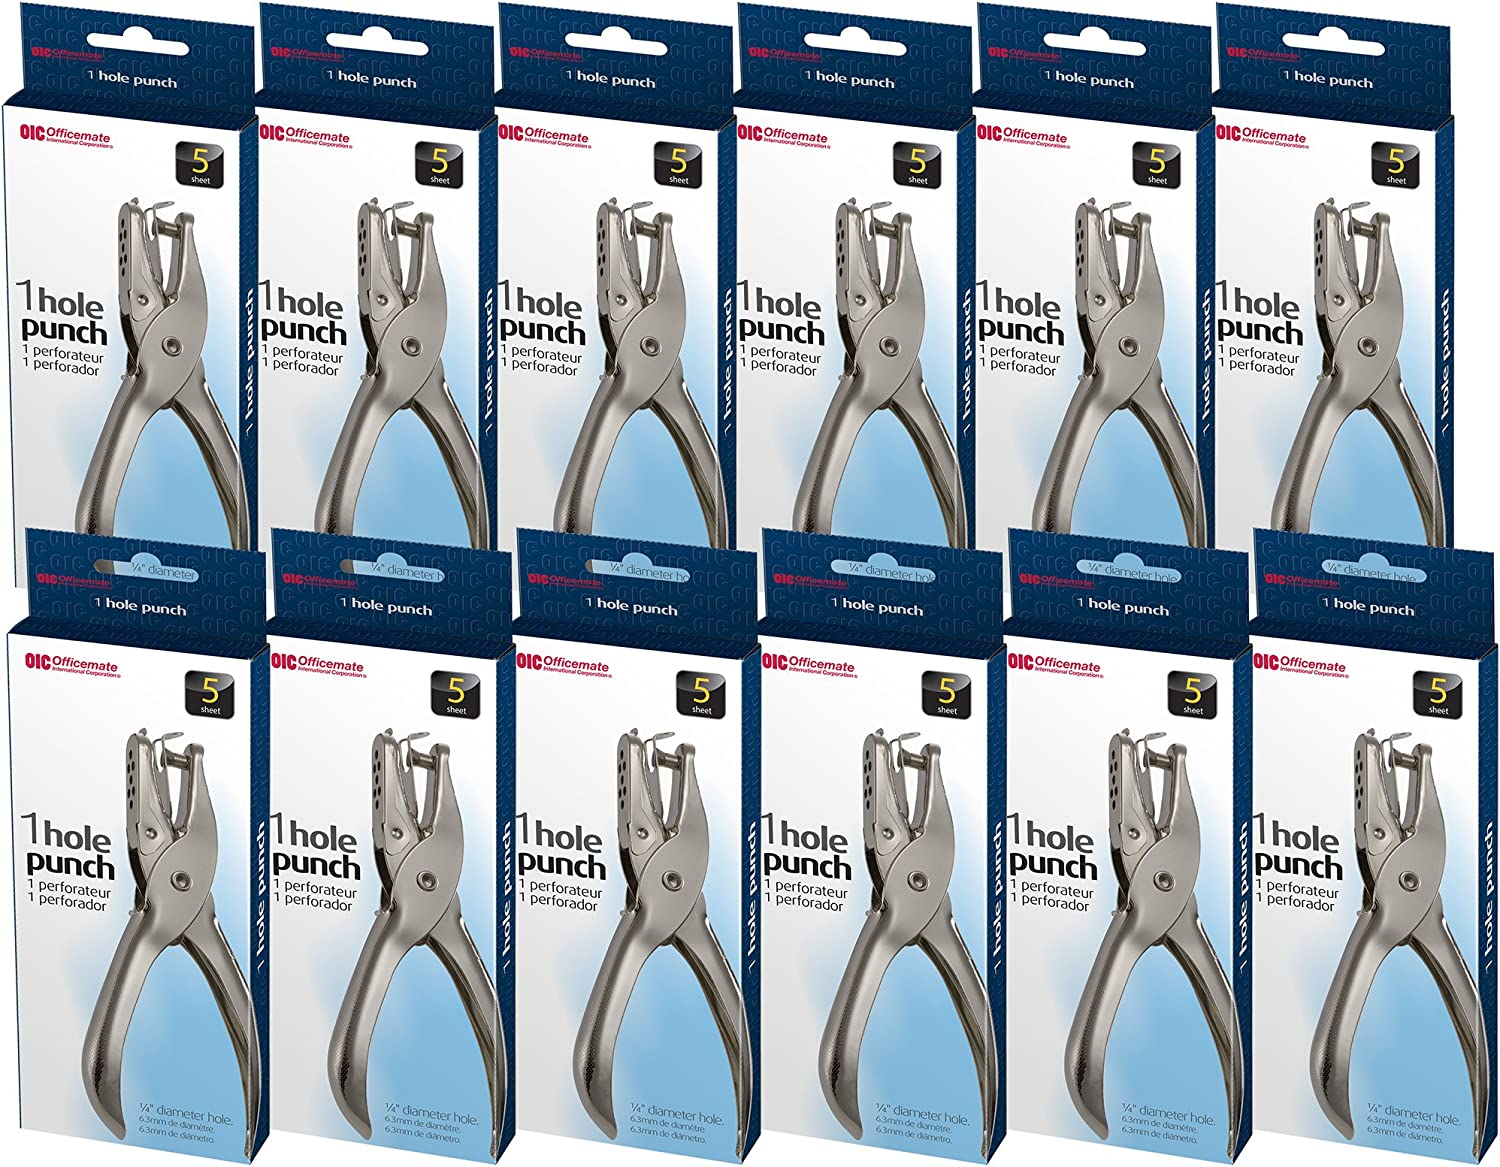 Officemate 1 Hole Punch, 5 Sheet Capacity, Comes in 12 Pack, Silver (90075)